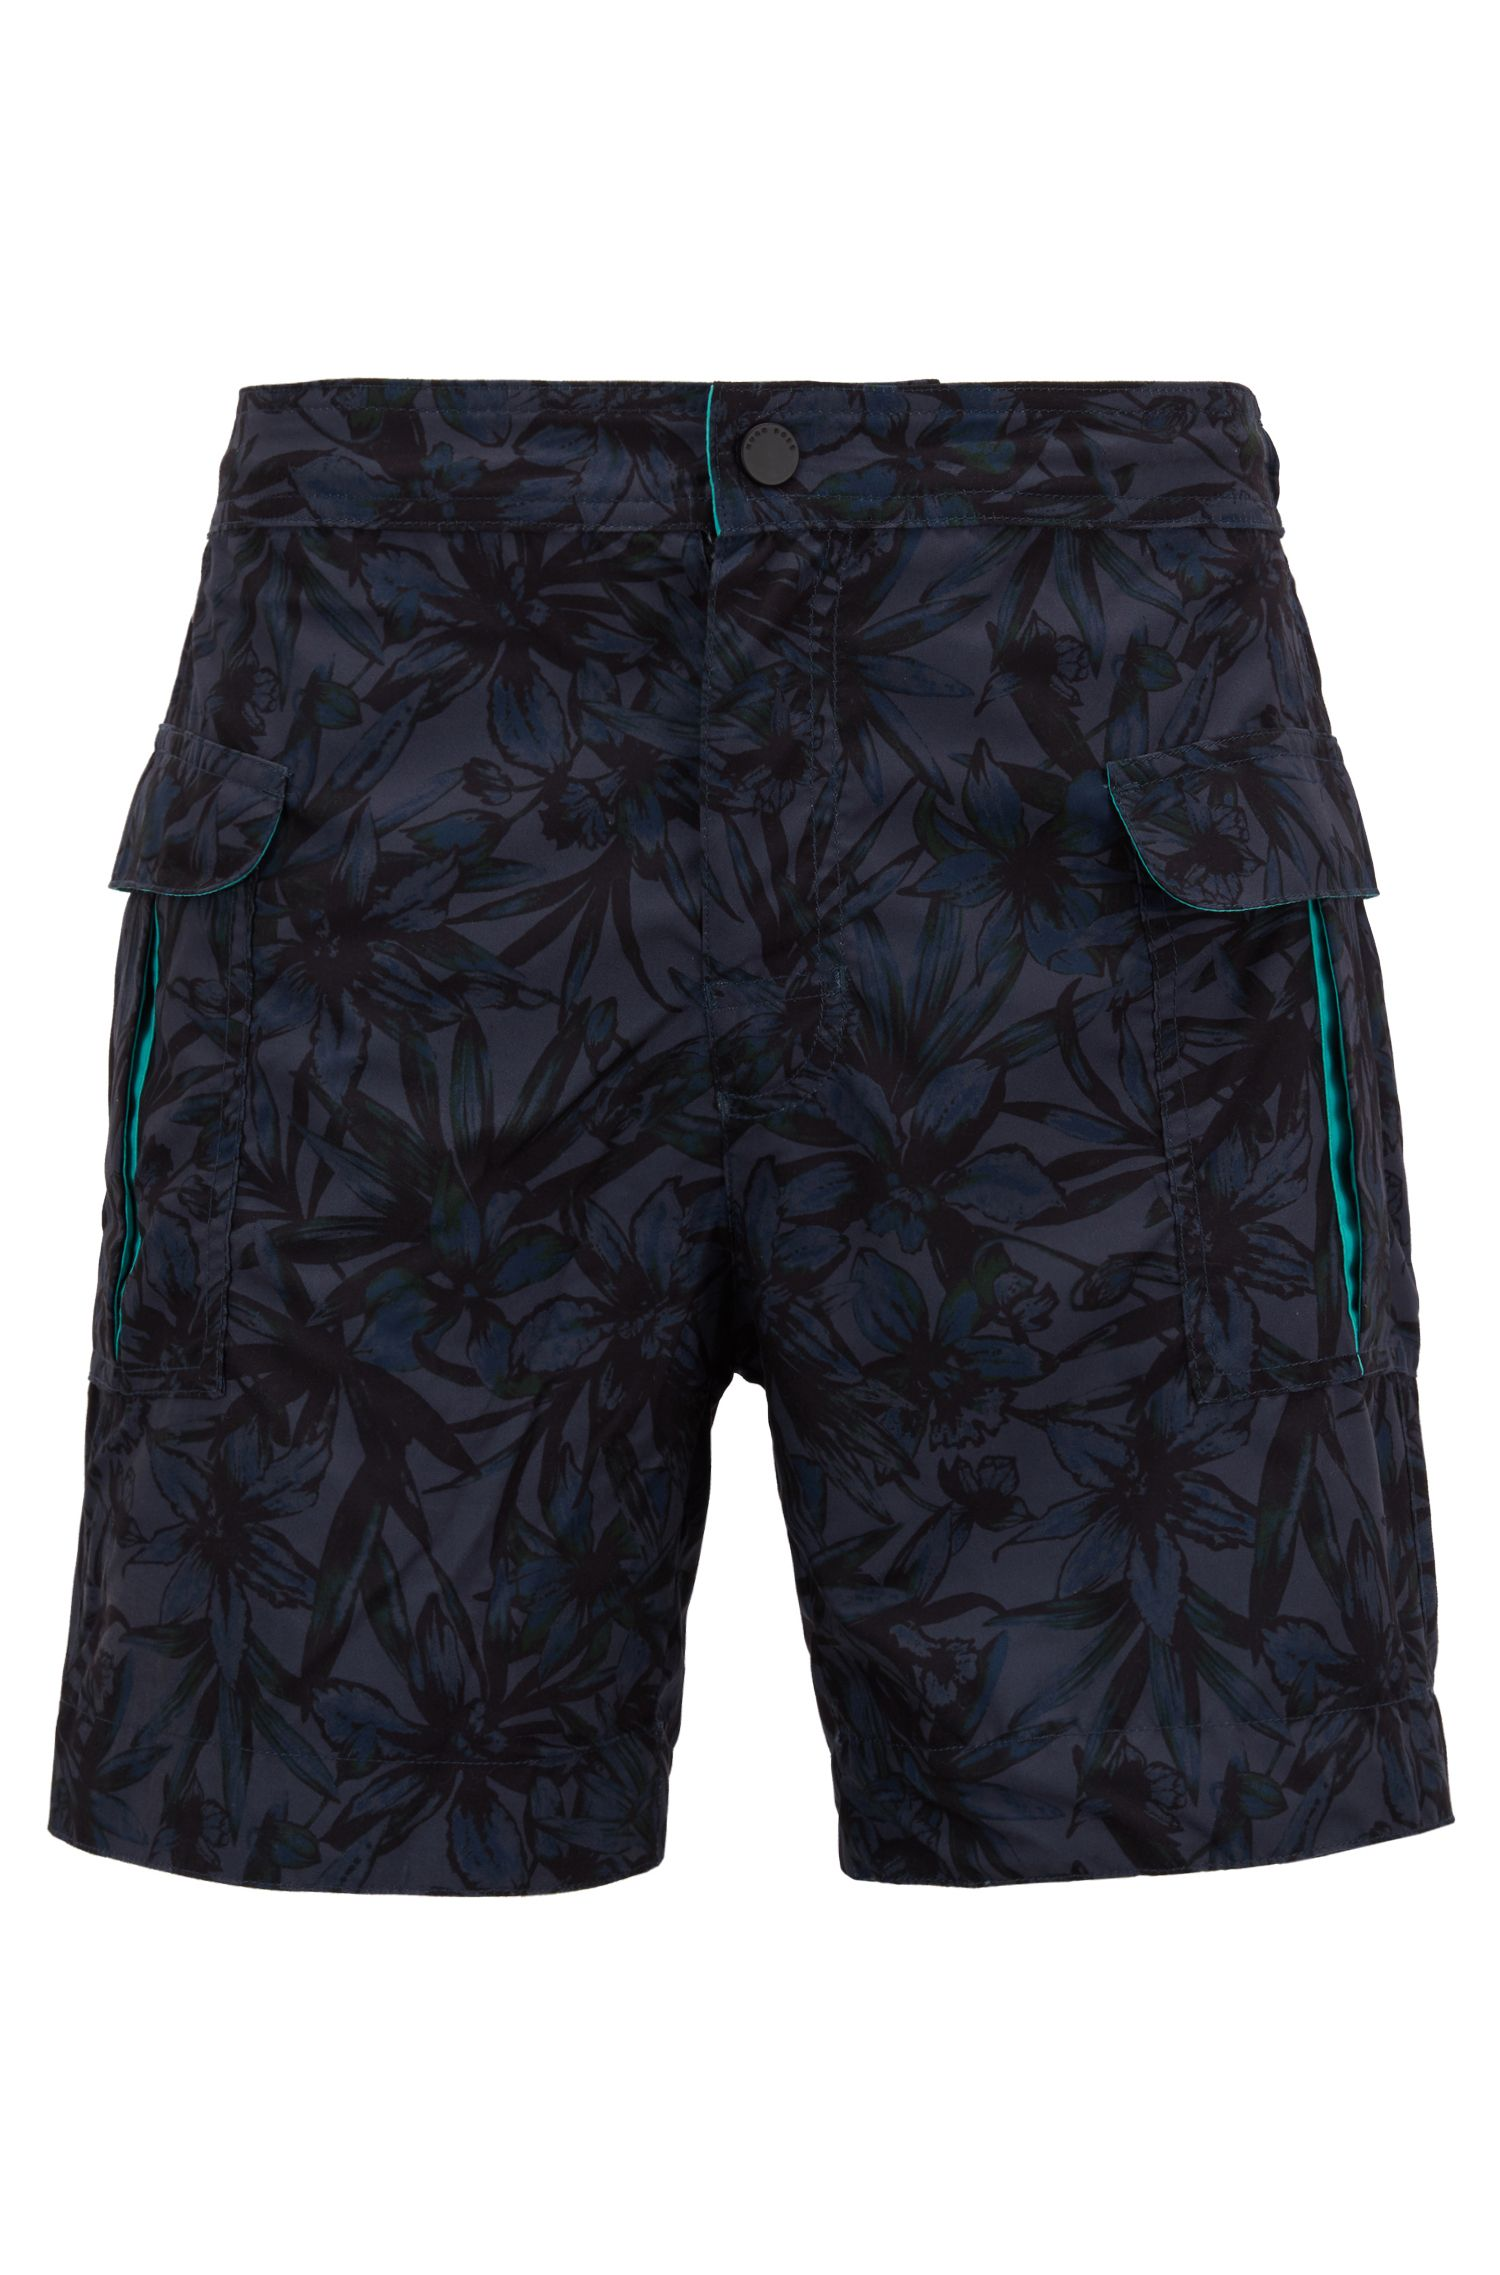 Tropical pattern quick-dry swim shorts